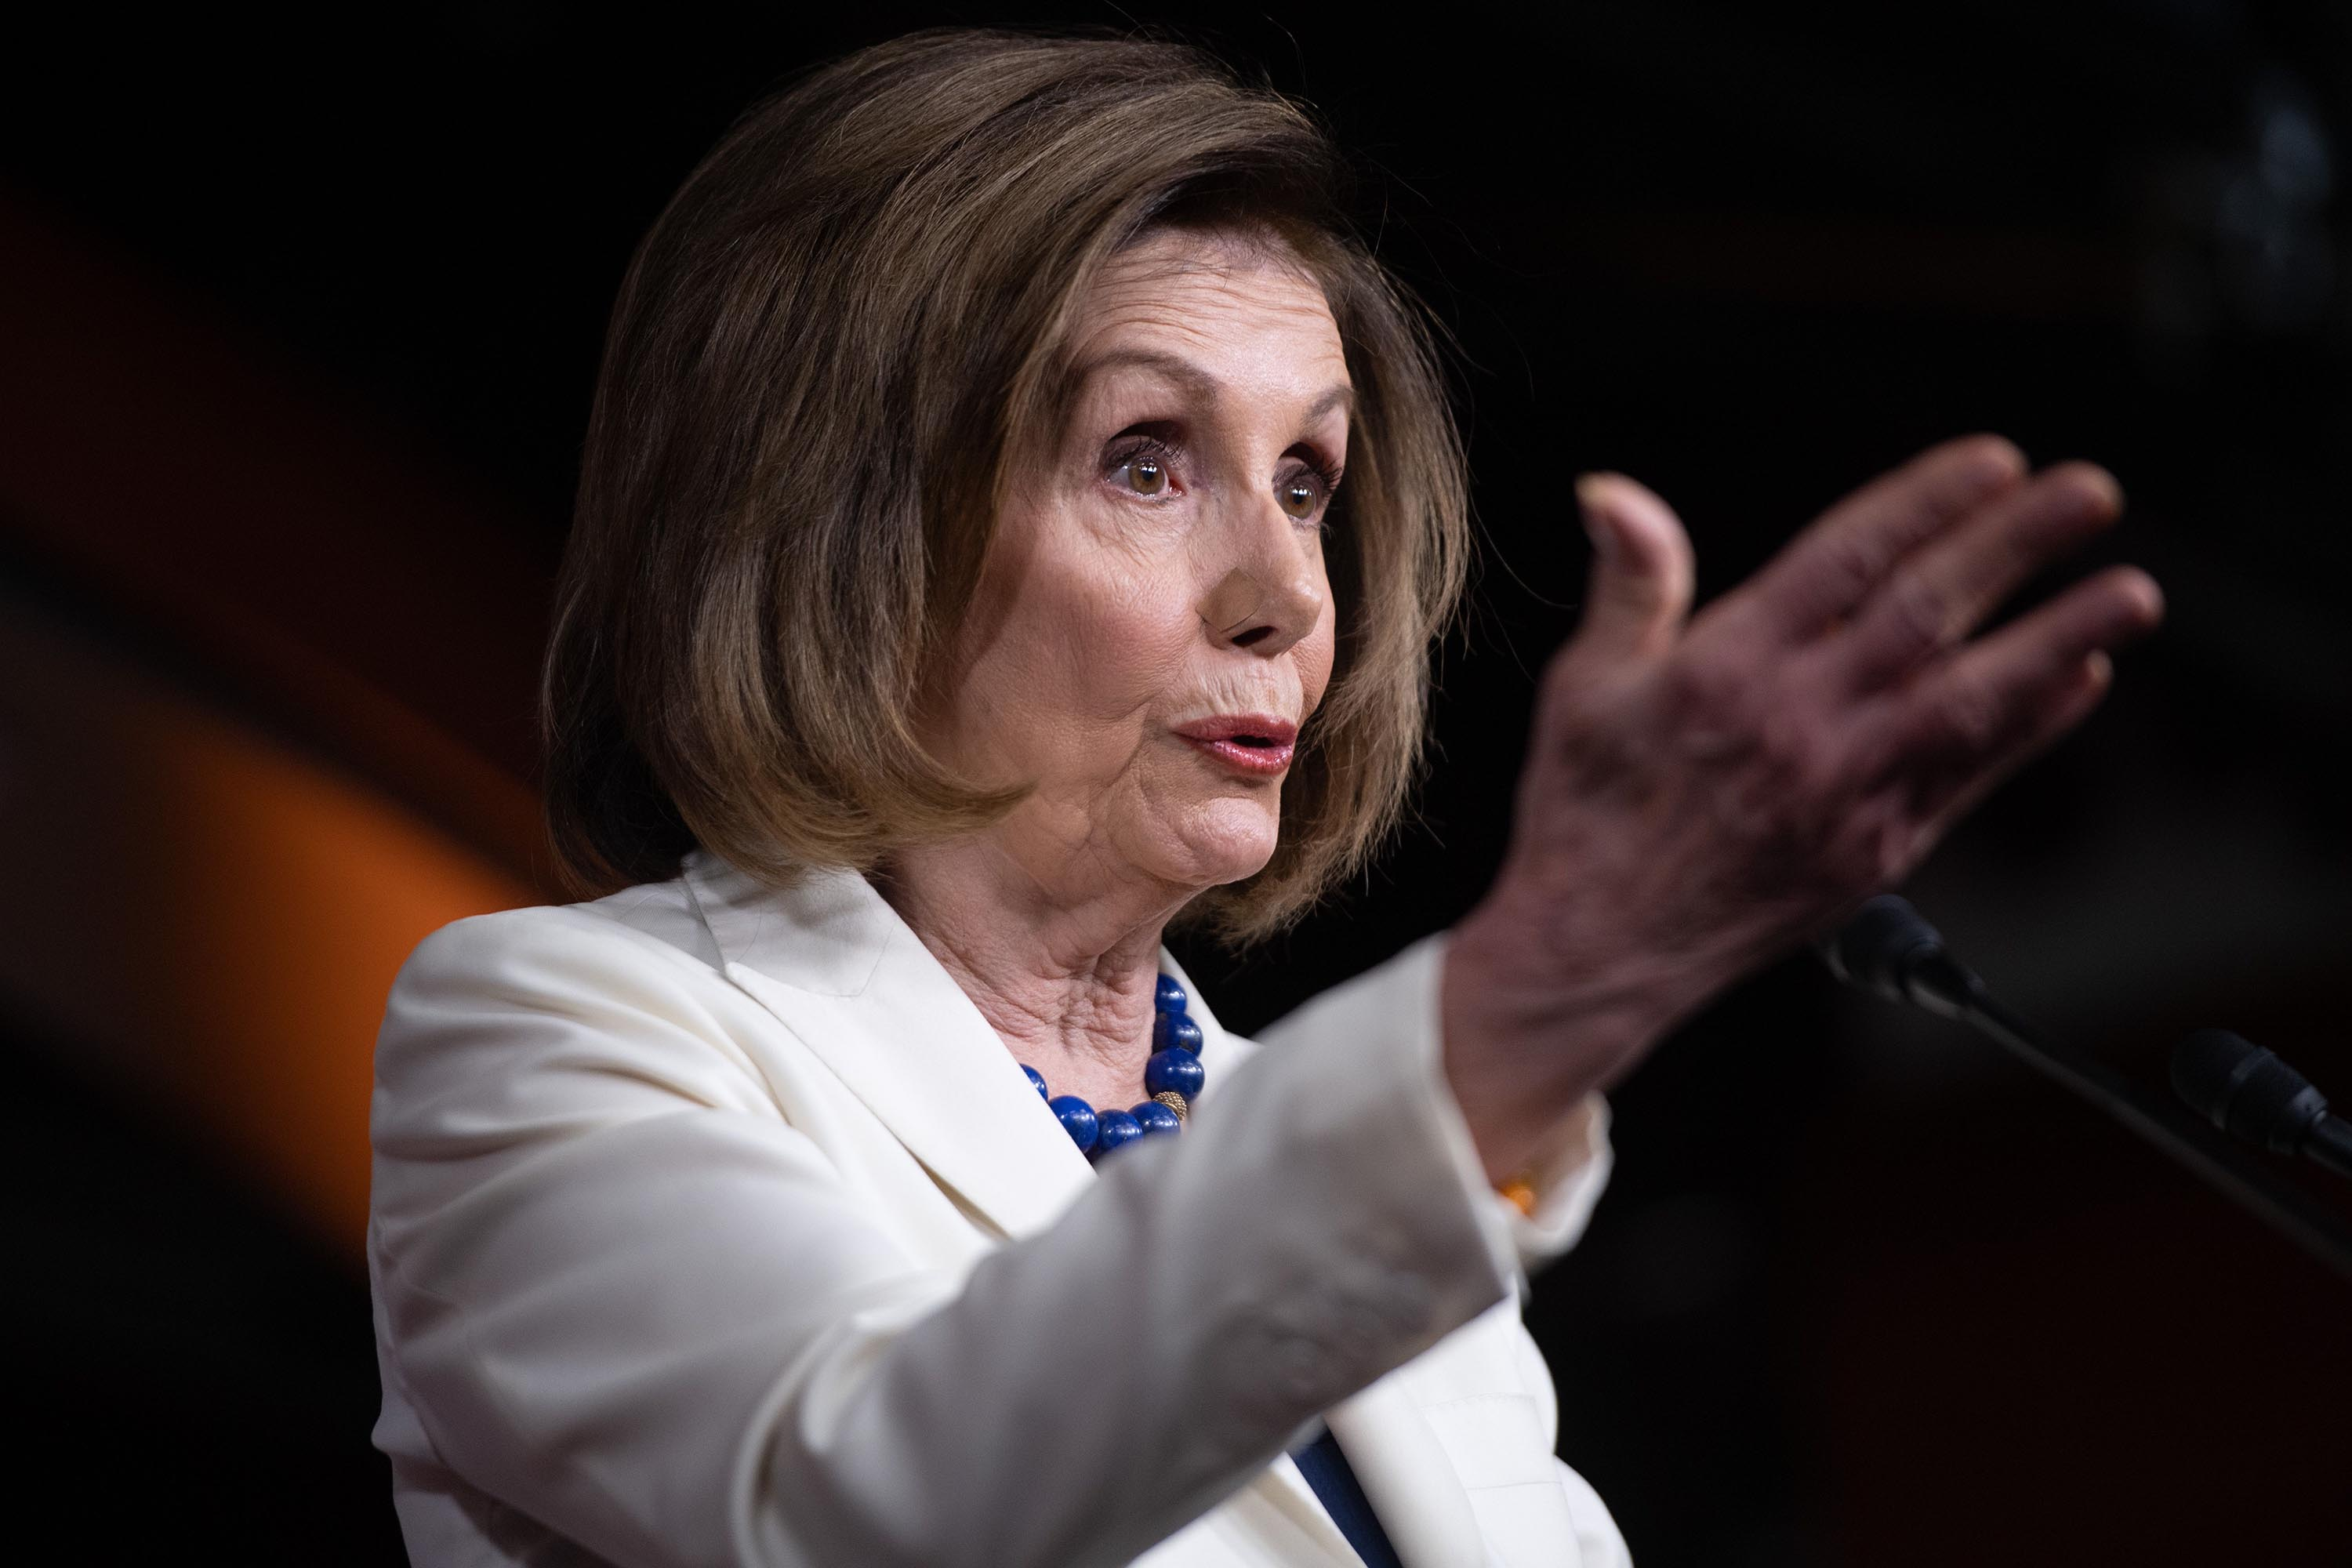 Pelosi warns: 'Civilization as we know it today is at stake' in 2020 election